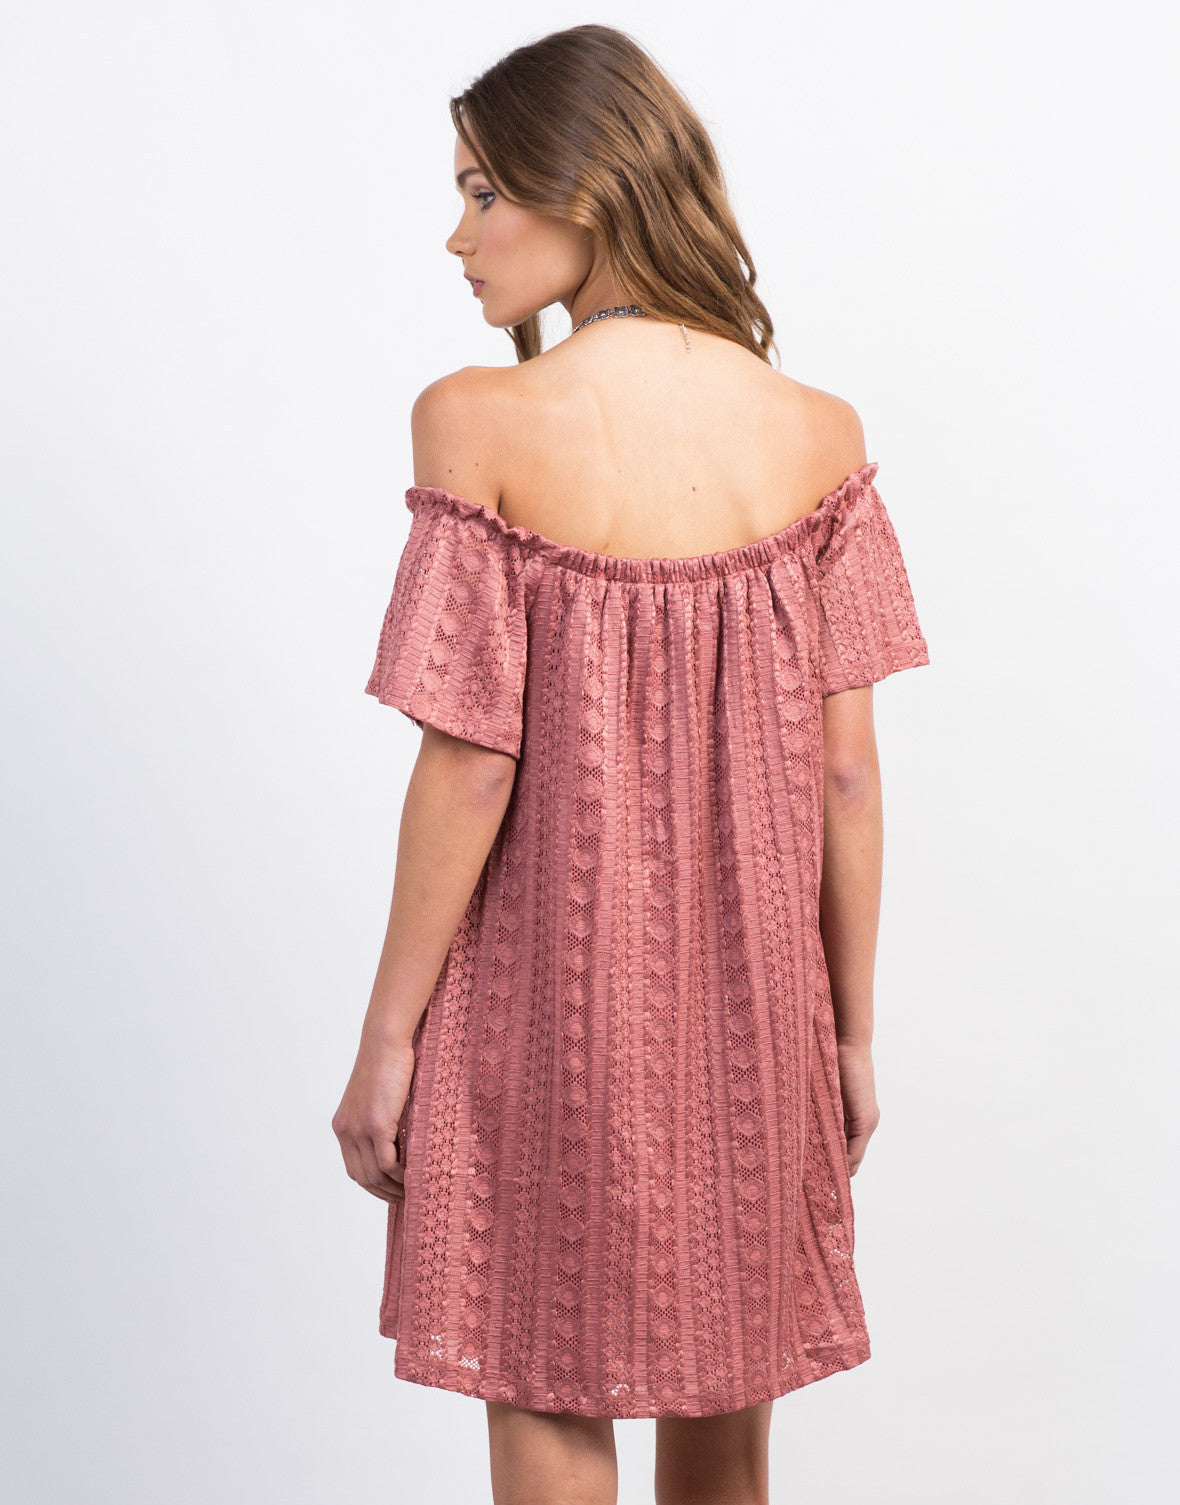 Back View of Off-the-Shoulder Lace Detailed Dress